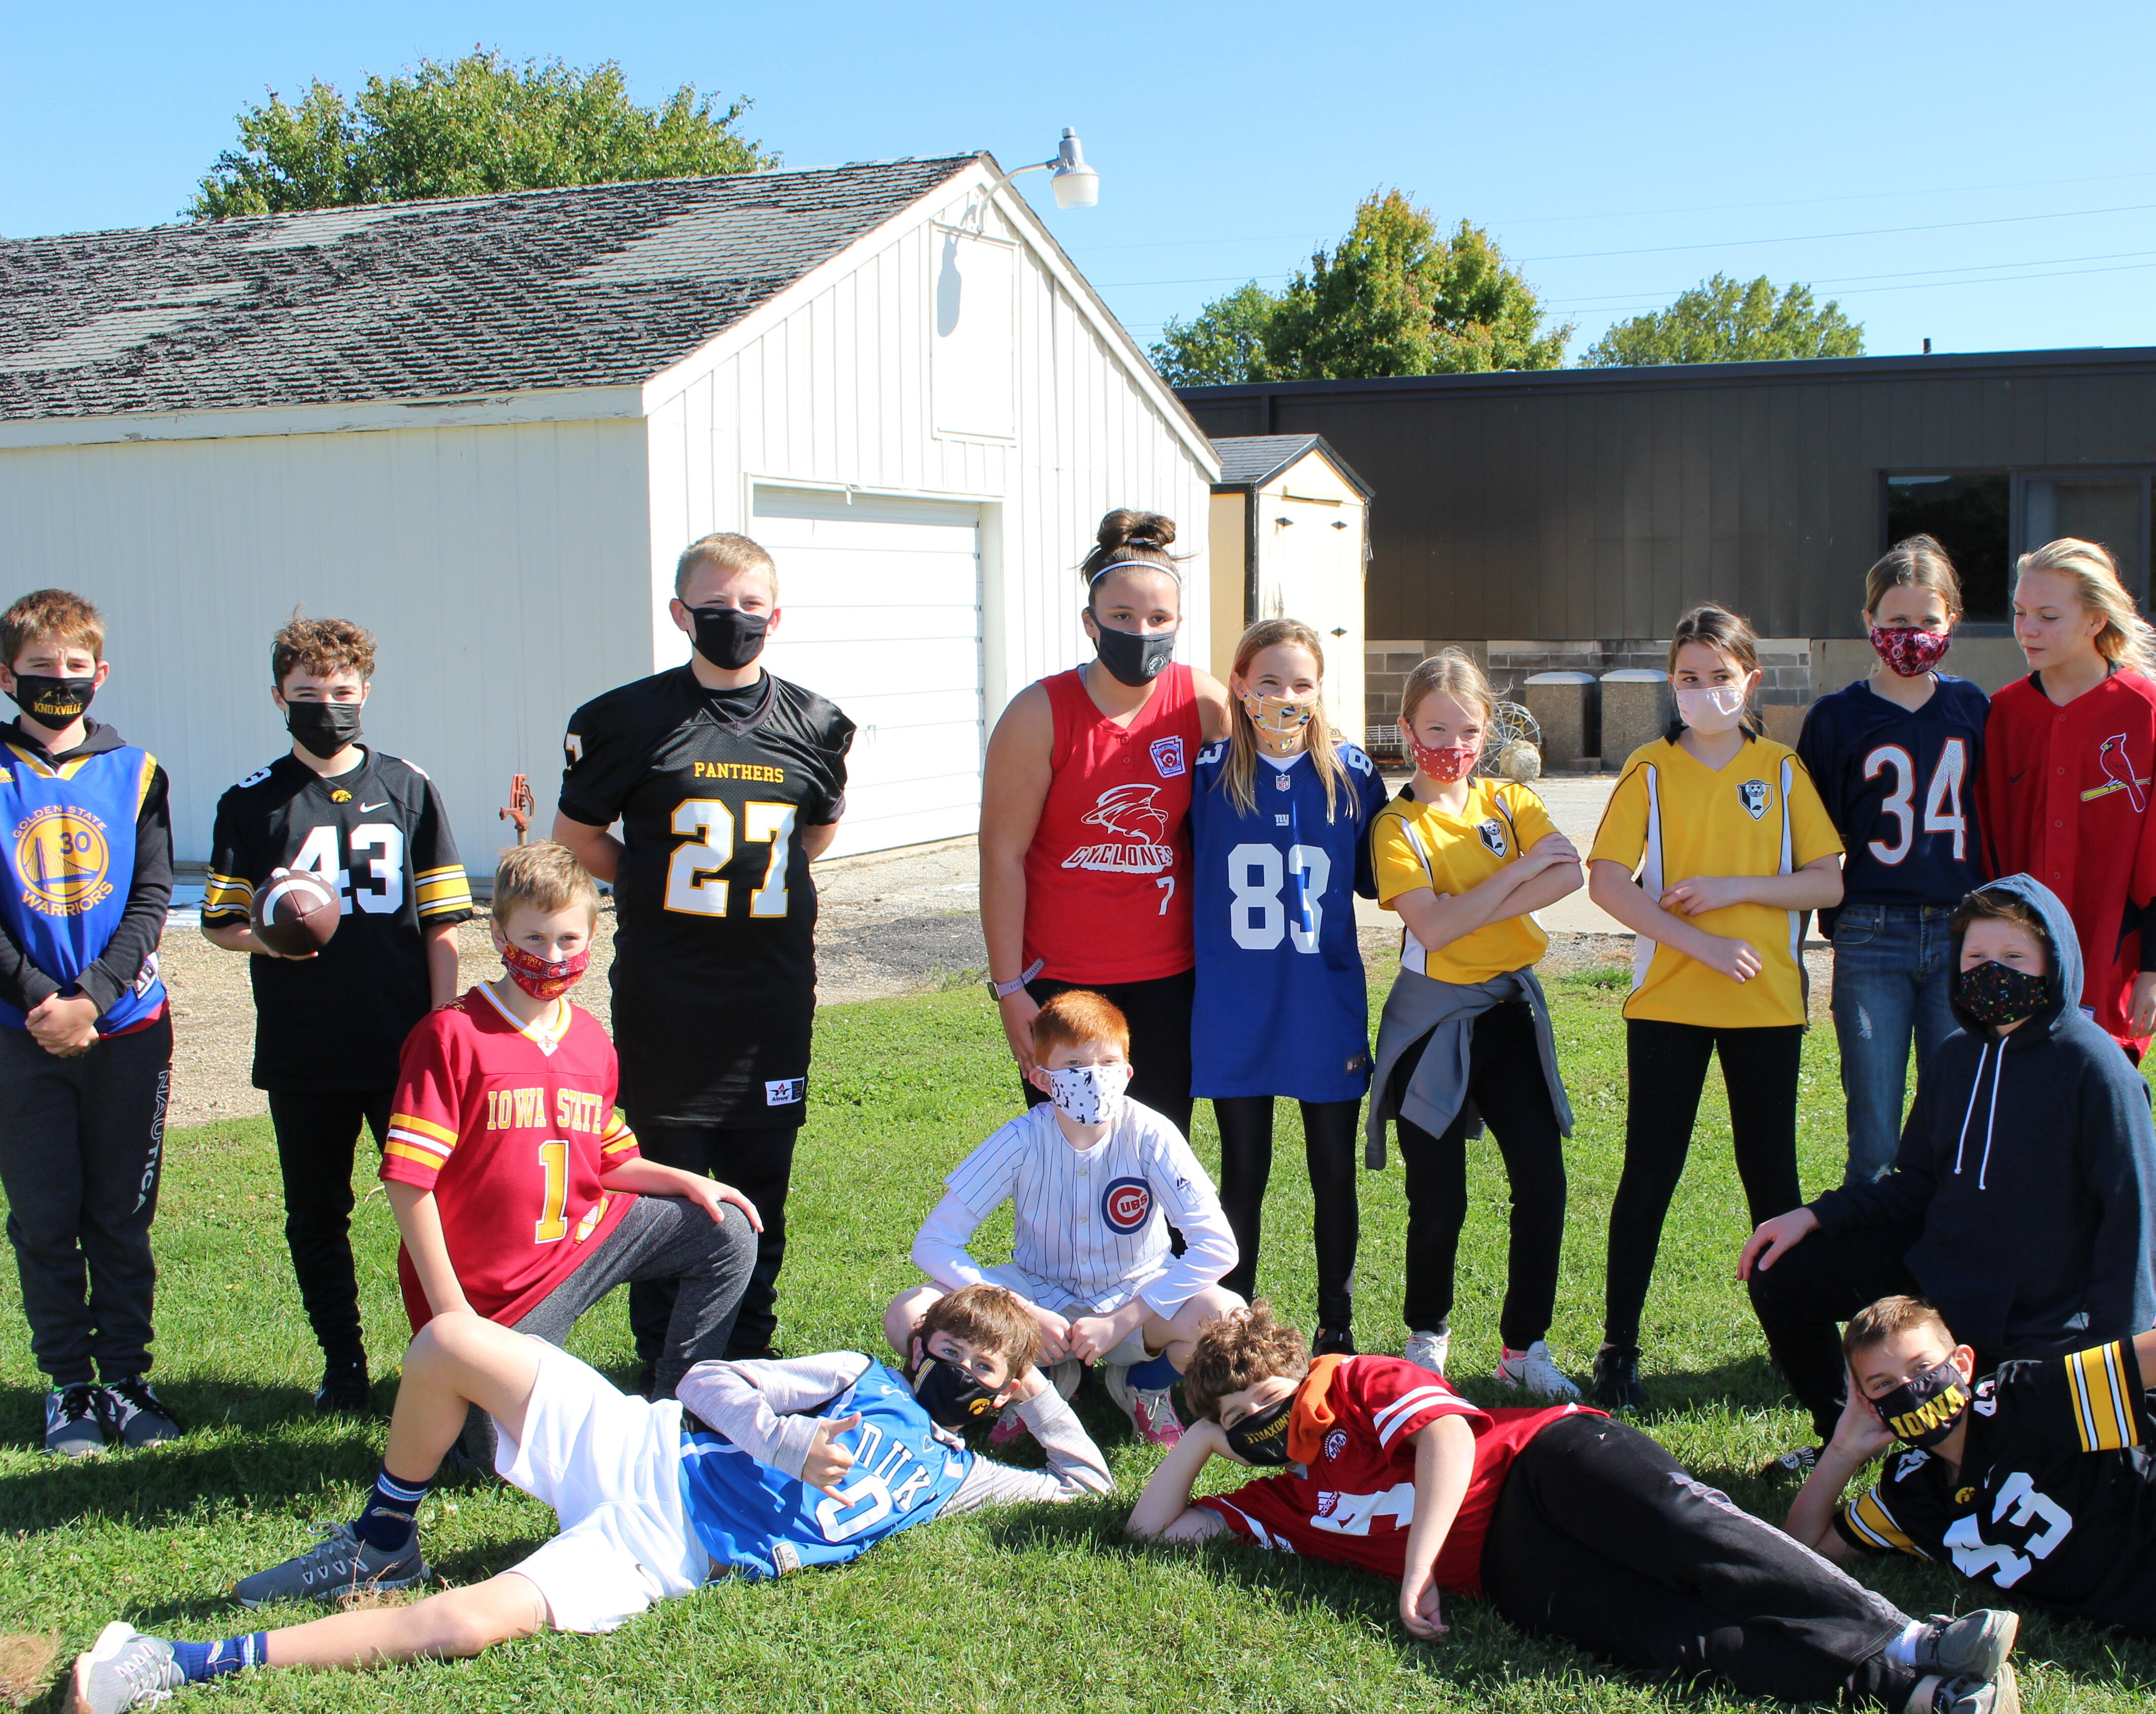 Jersey Day @ KMS